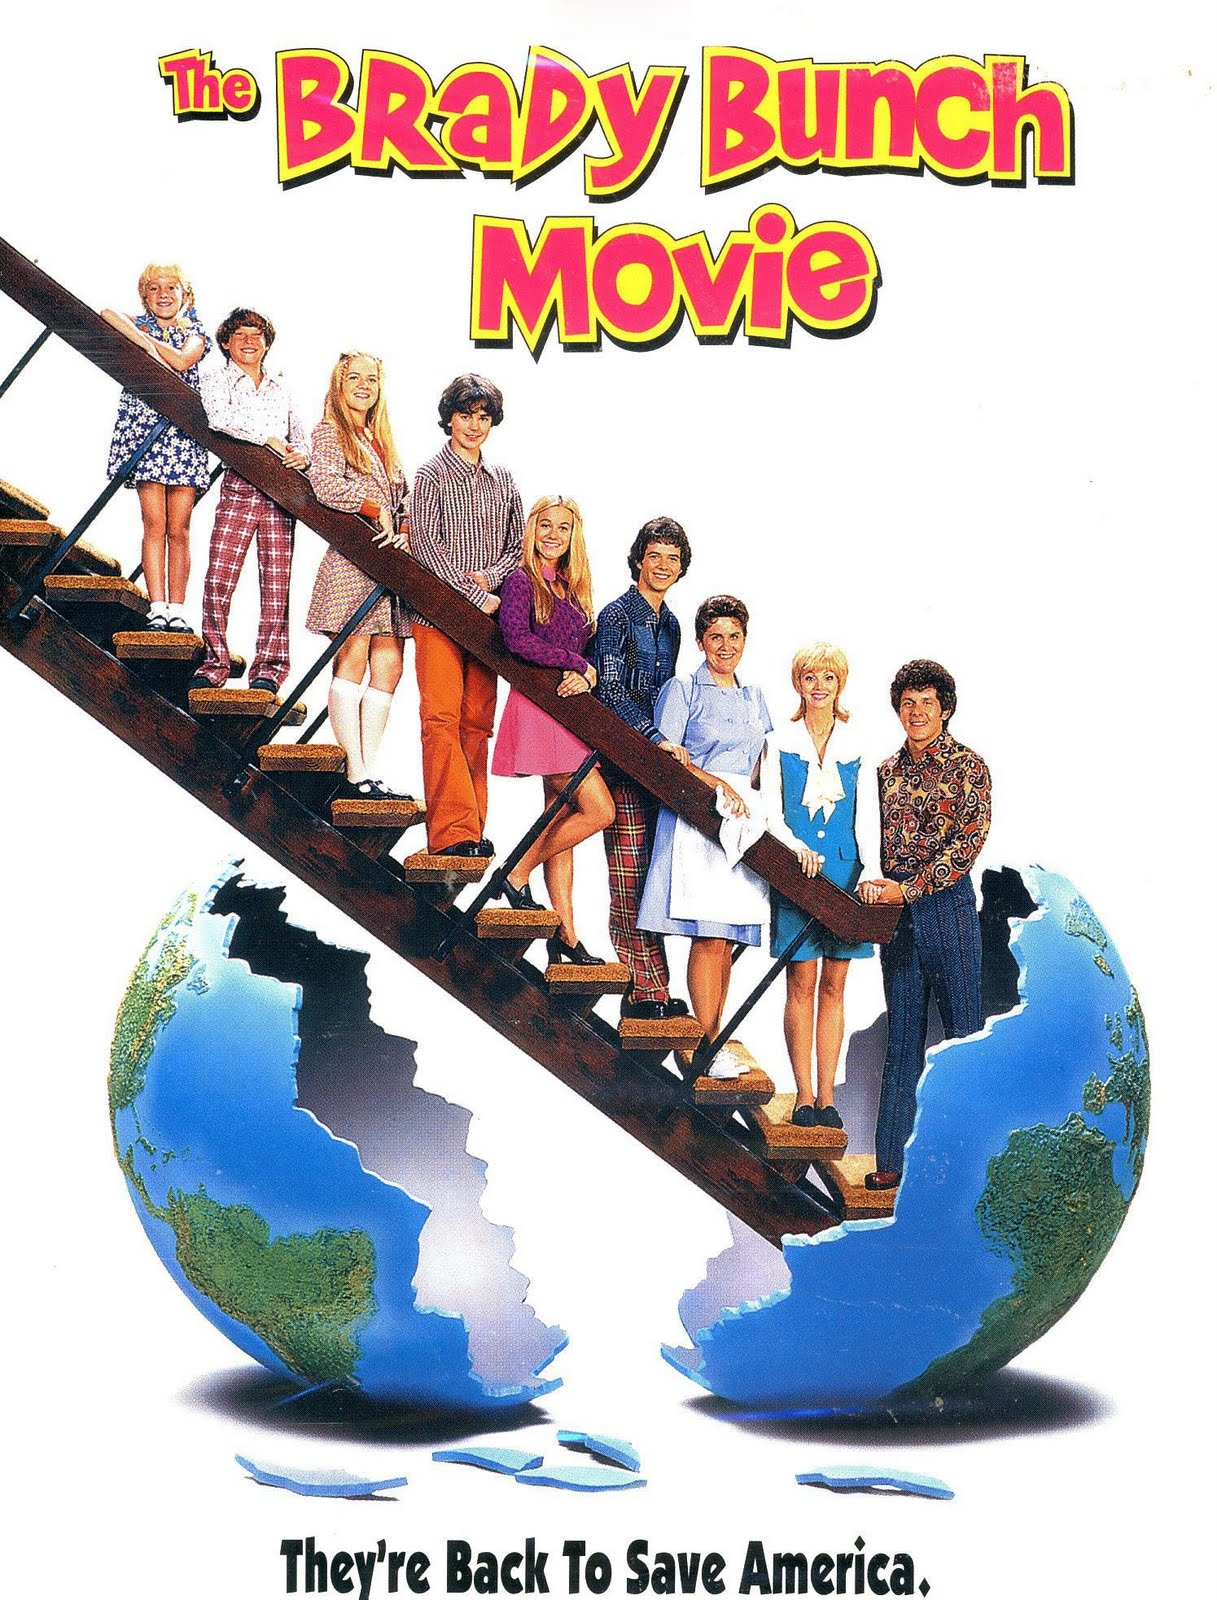 http://1.bp.blogspot.com/-FAj9NJQTXkg/TgQKrSeZtsI/AAAAAAAAGak/tMUxIKCVlPQ/s1600/the-brady-bunch-movie-original.jpg